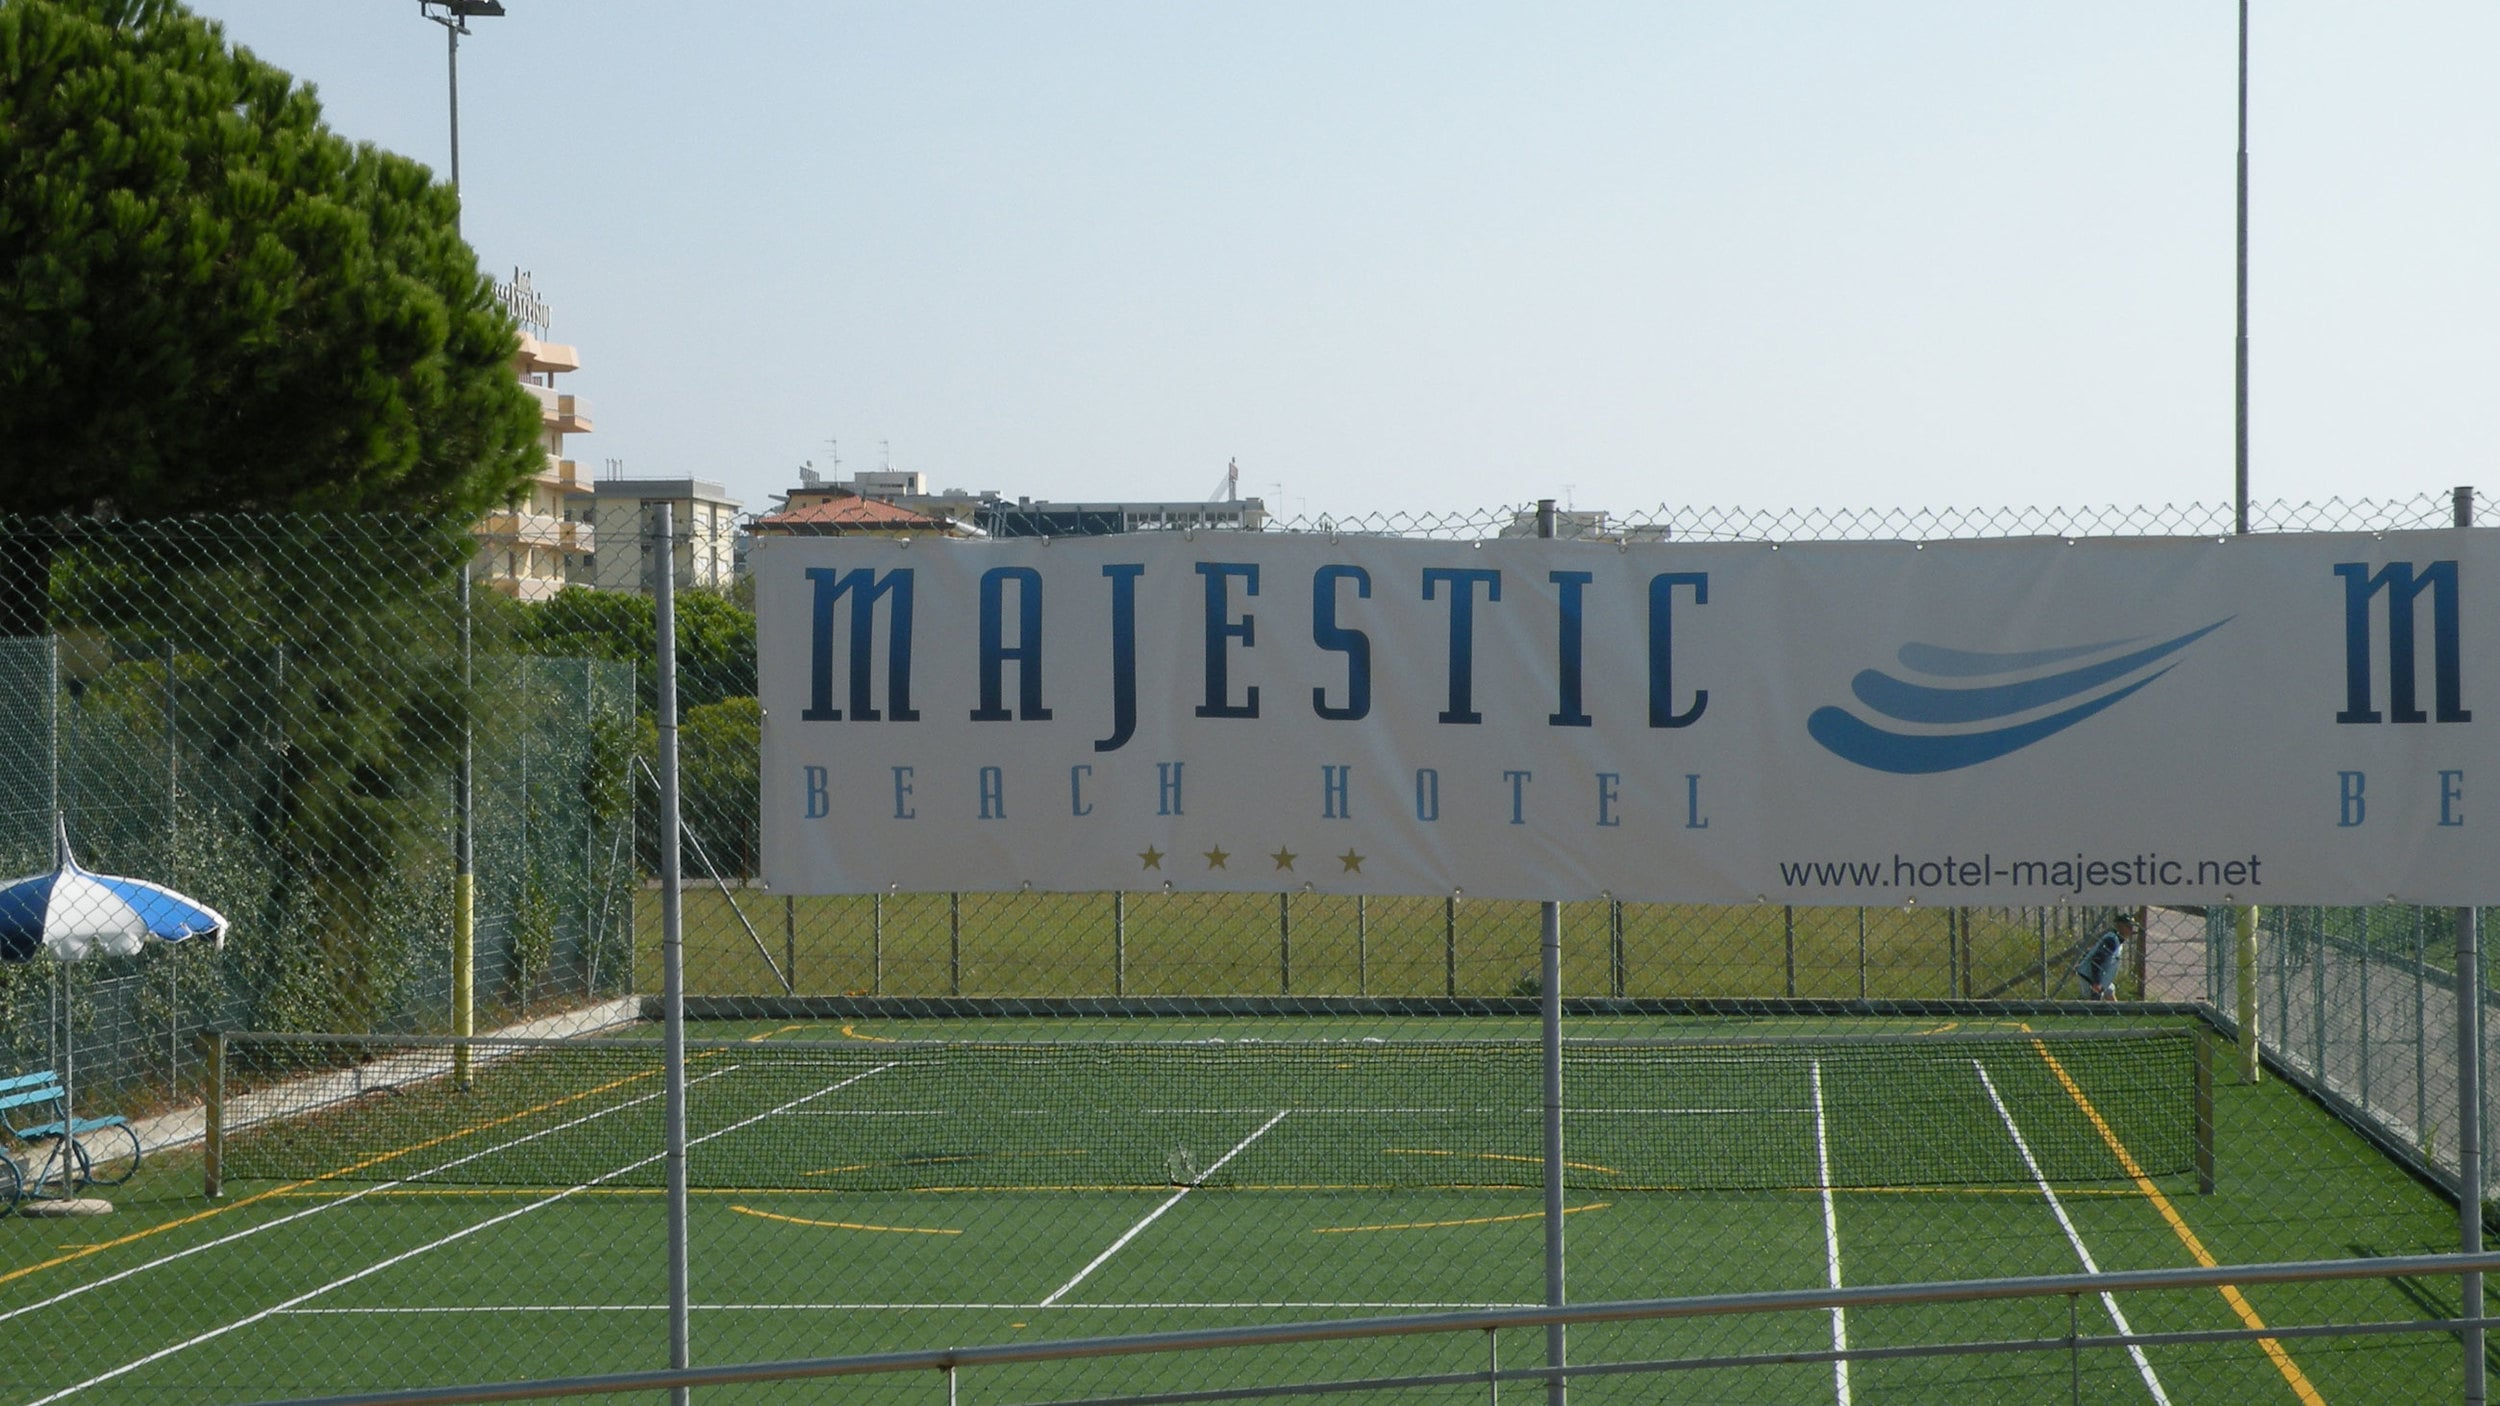 TENNIS FACILITIES OF THE HOTEL MAJESTIC, BIBIONE SPIAGGIA